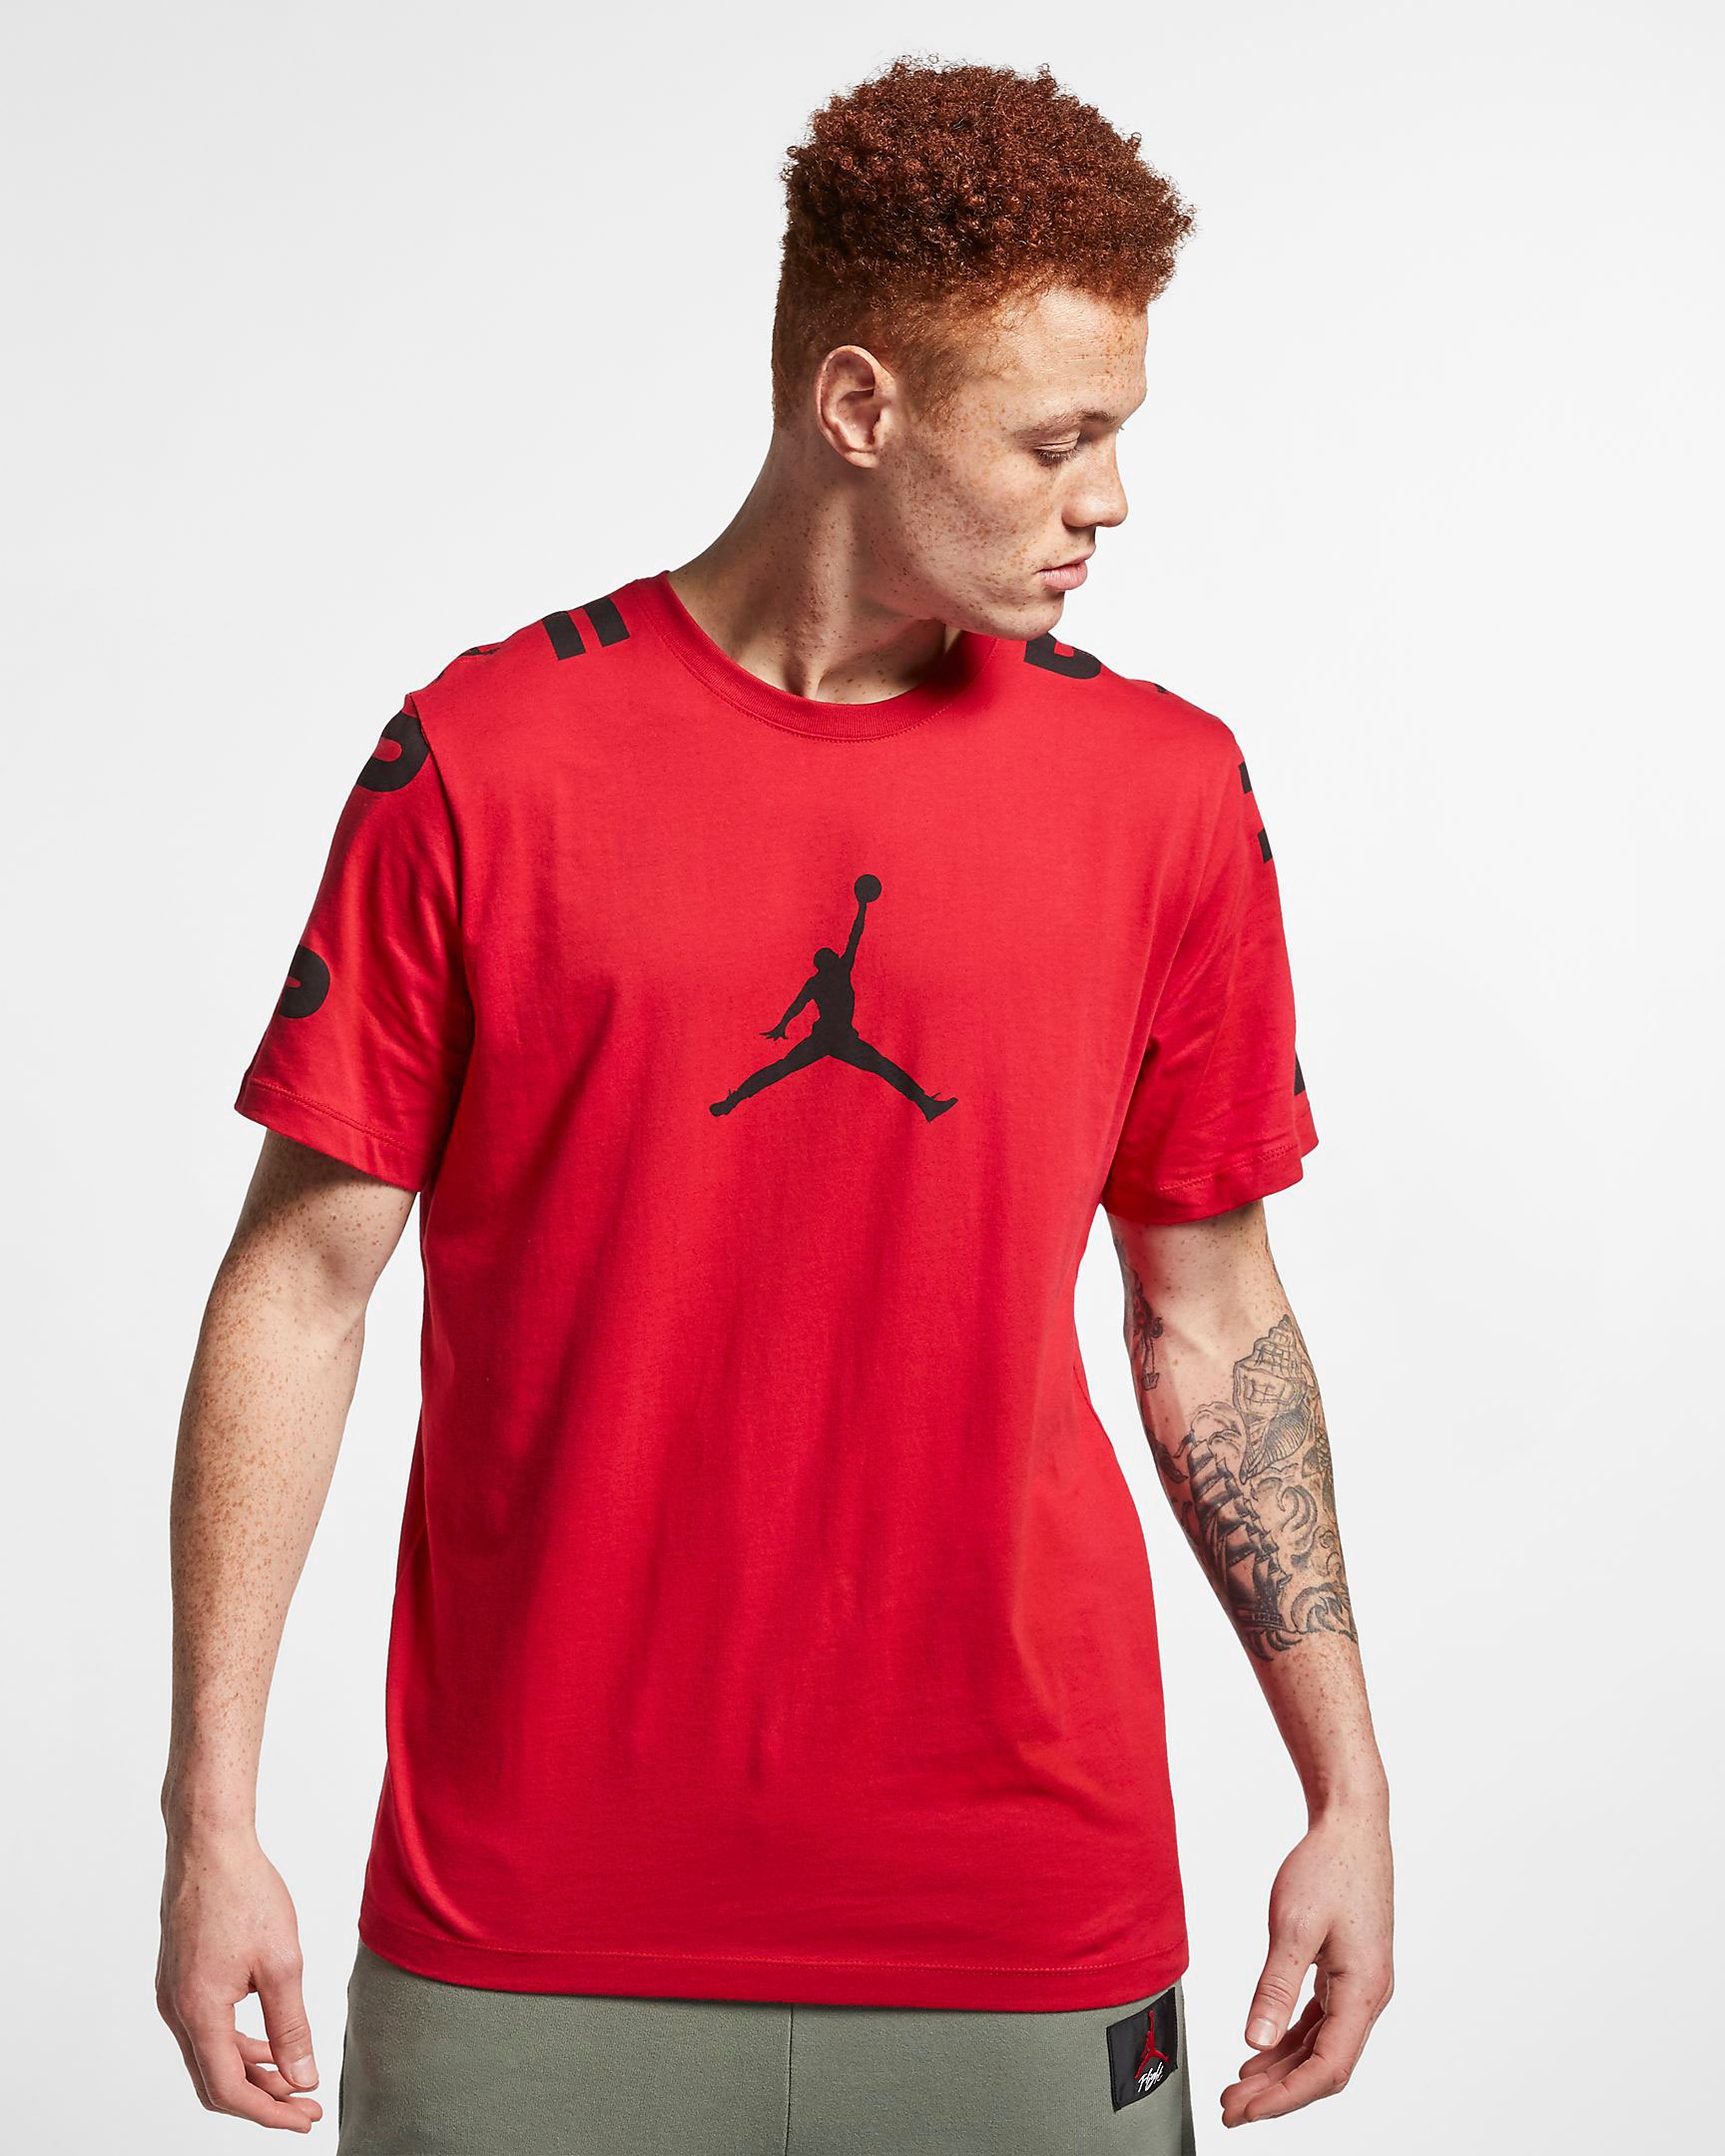 air-jordan-4-bred-2019-shirt-match-3